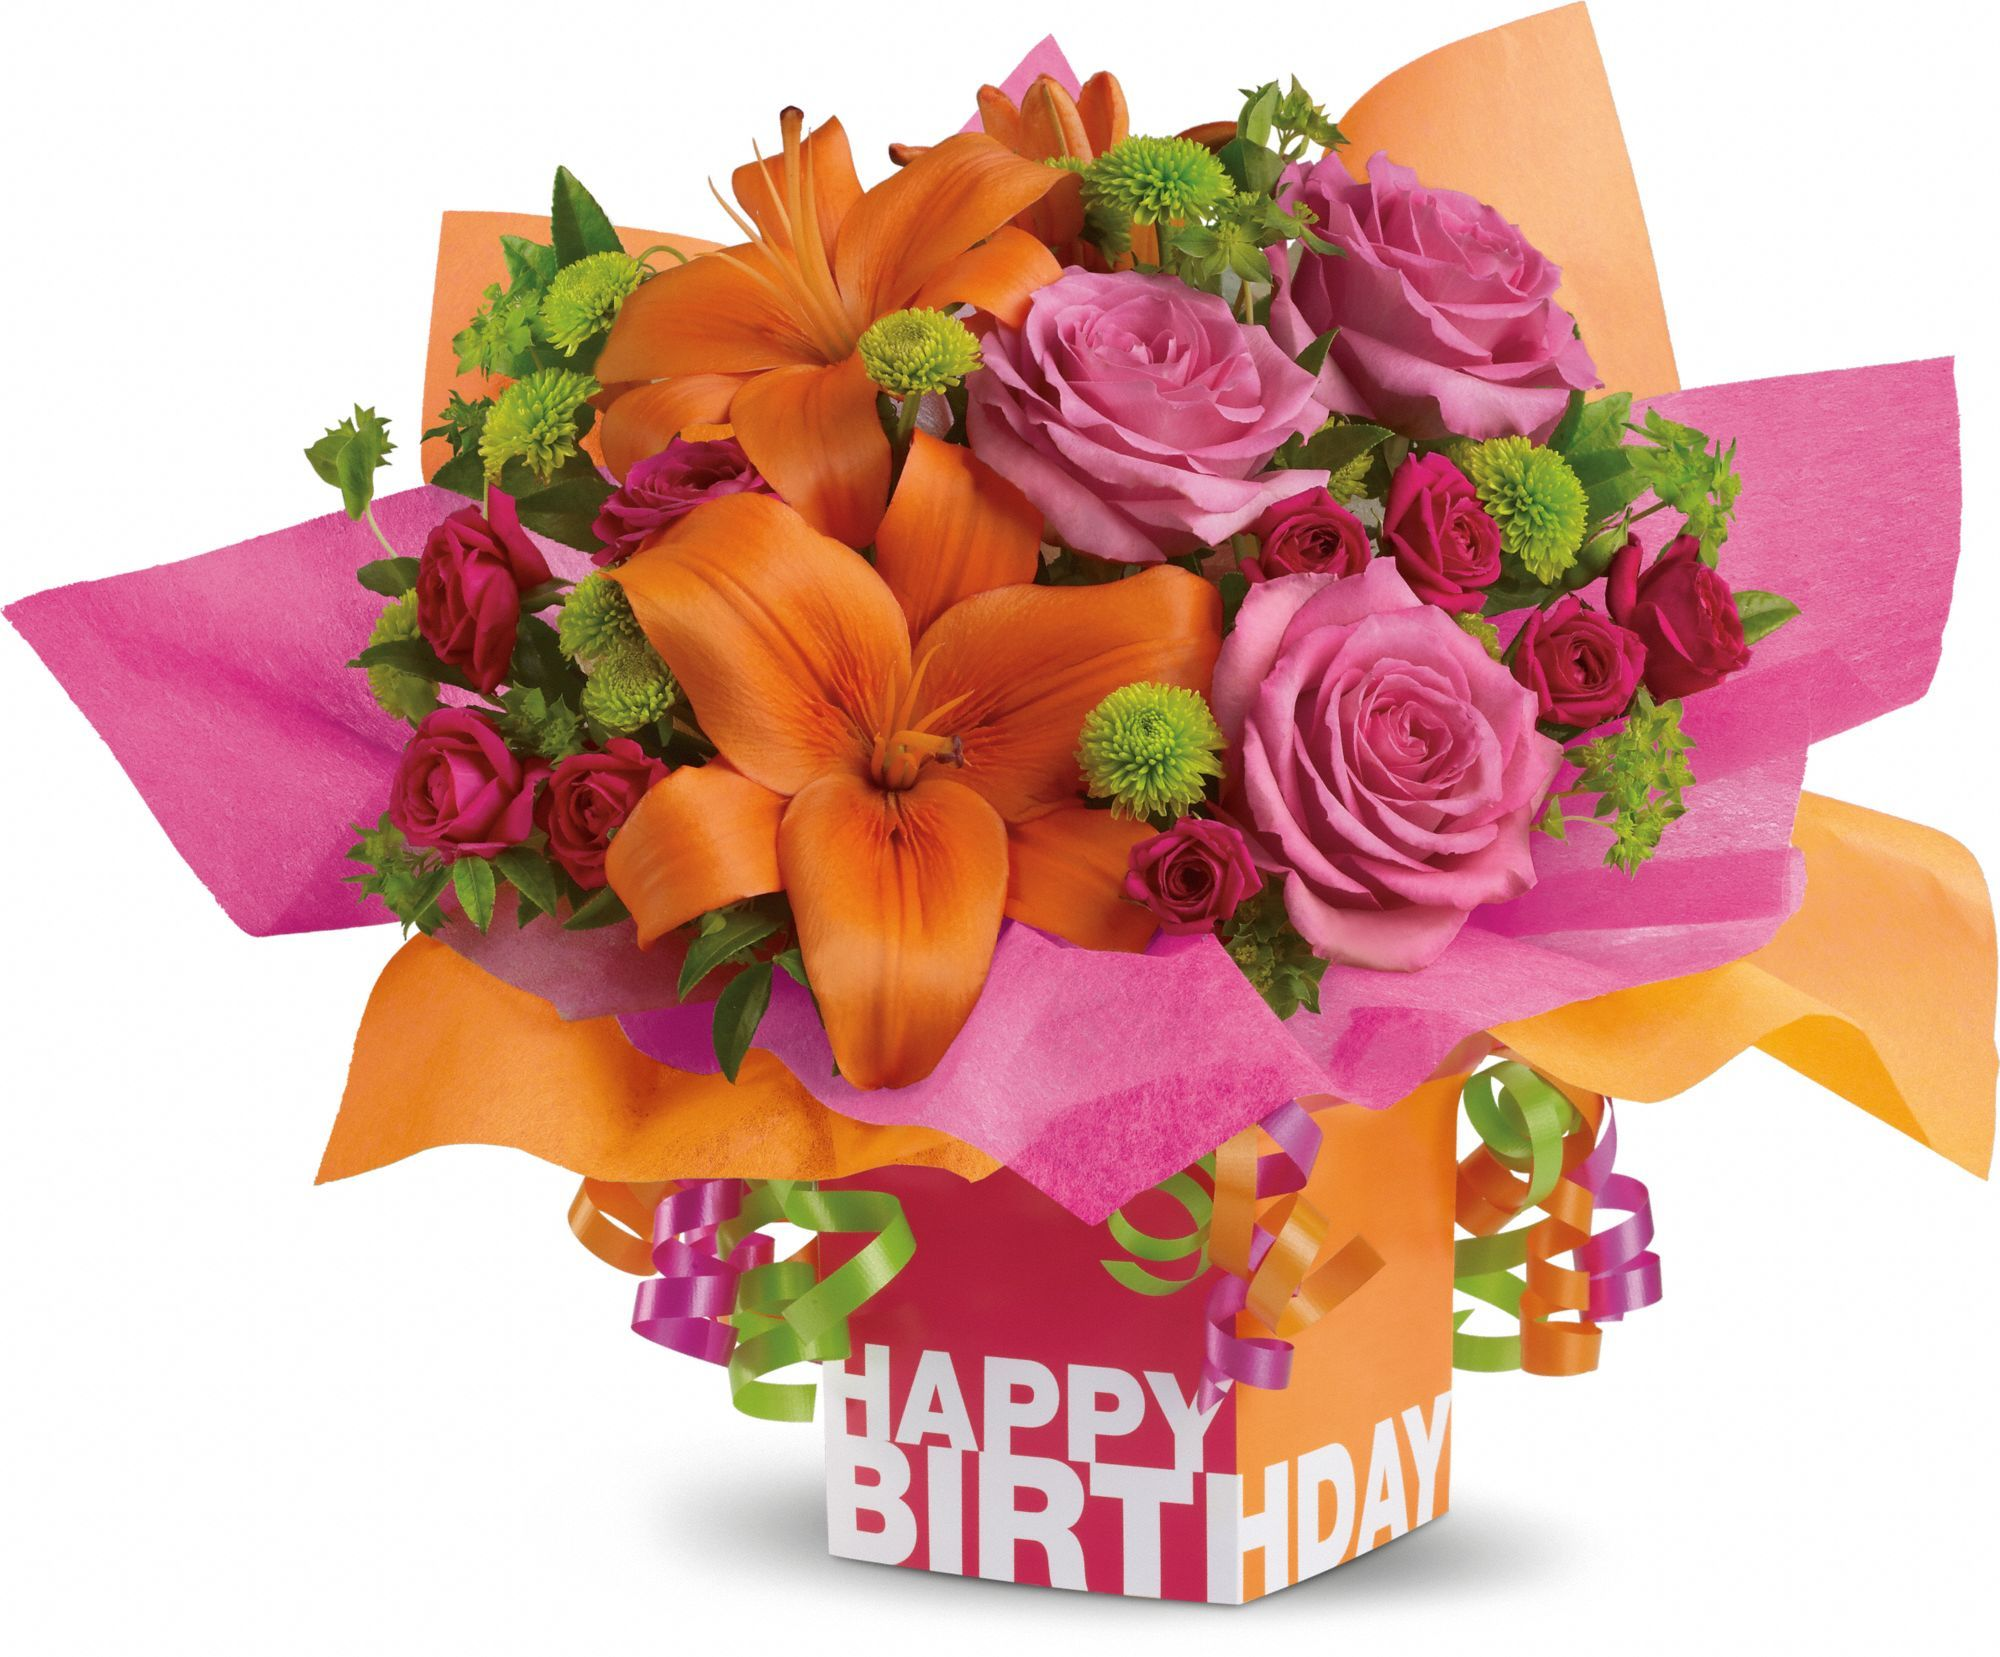 Telefloras rosy birthday present flores pinterest flowers send telefloras rosy birthday present for fresh and fast flower delivery throughout metairie la area izmirmasajfo